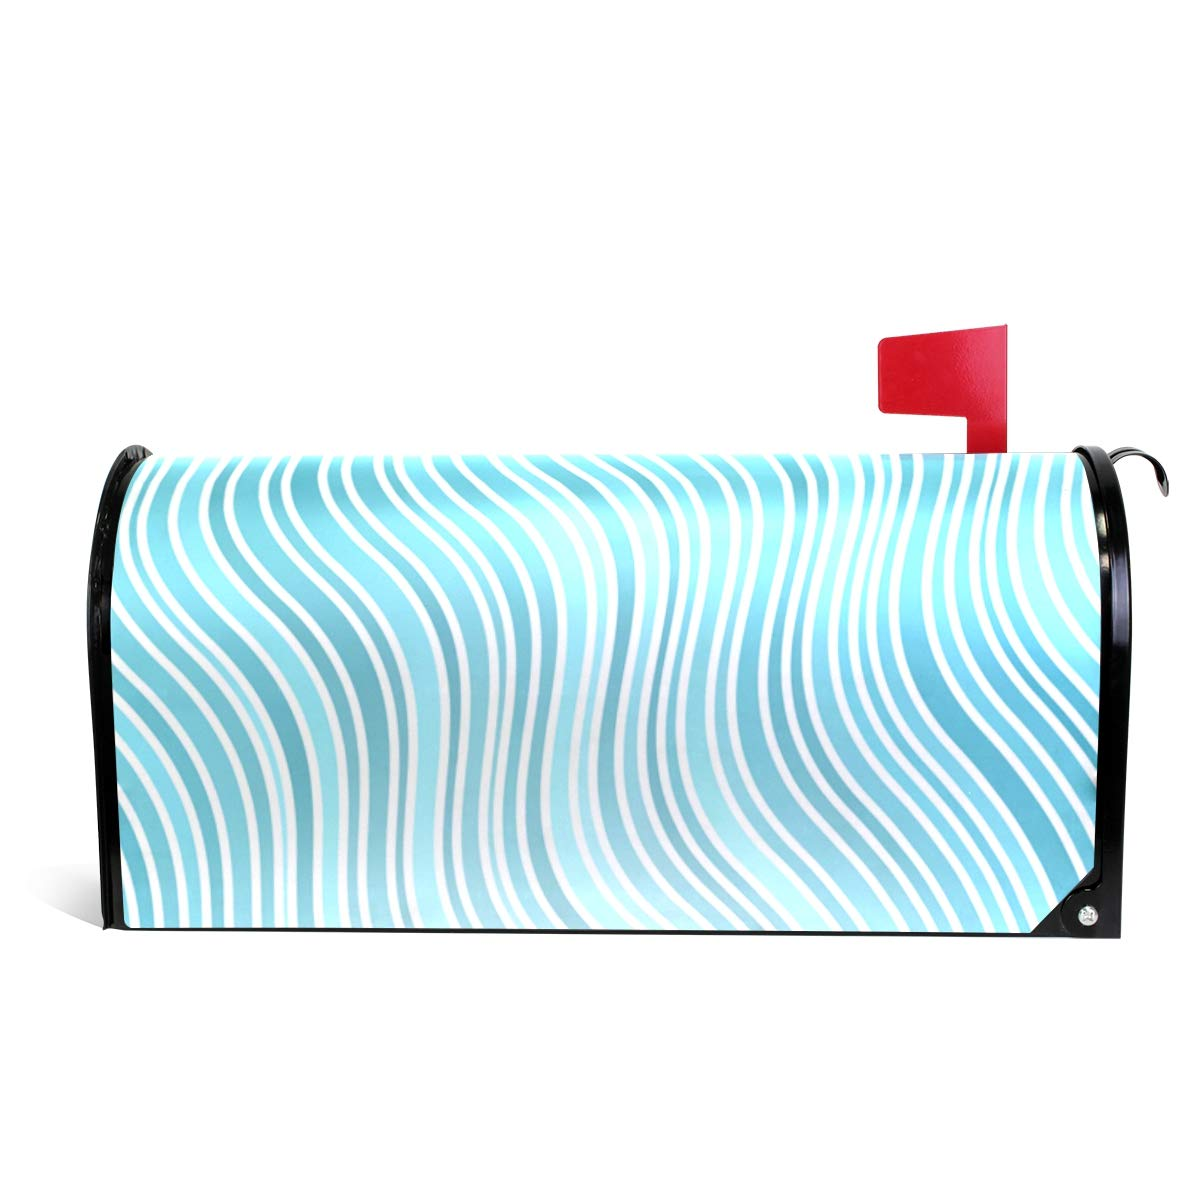 DEYYA Abstract Light Blue Wavy Stripes Magnetic Mailbox Covers and Wraps Personalized Decorative Standard Size 25.5 x 20.8 inch